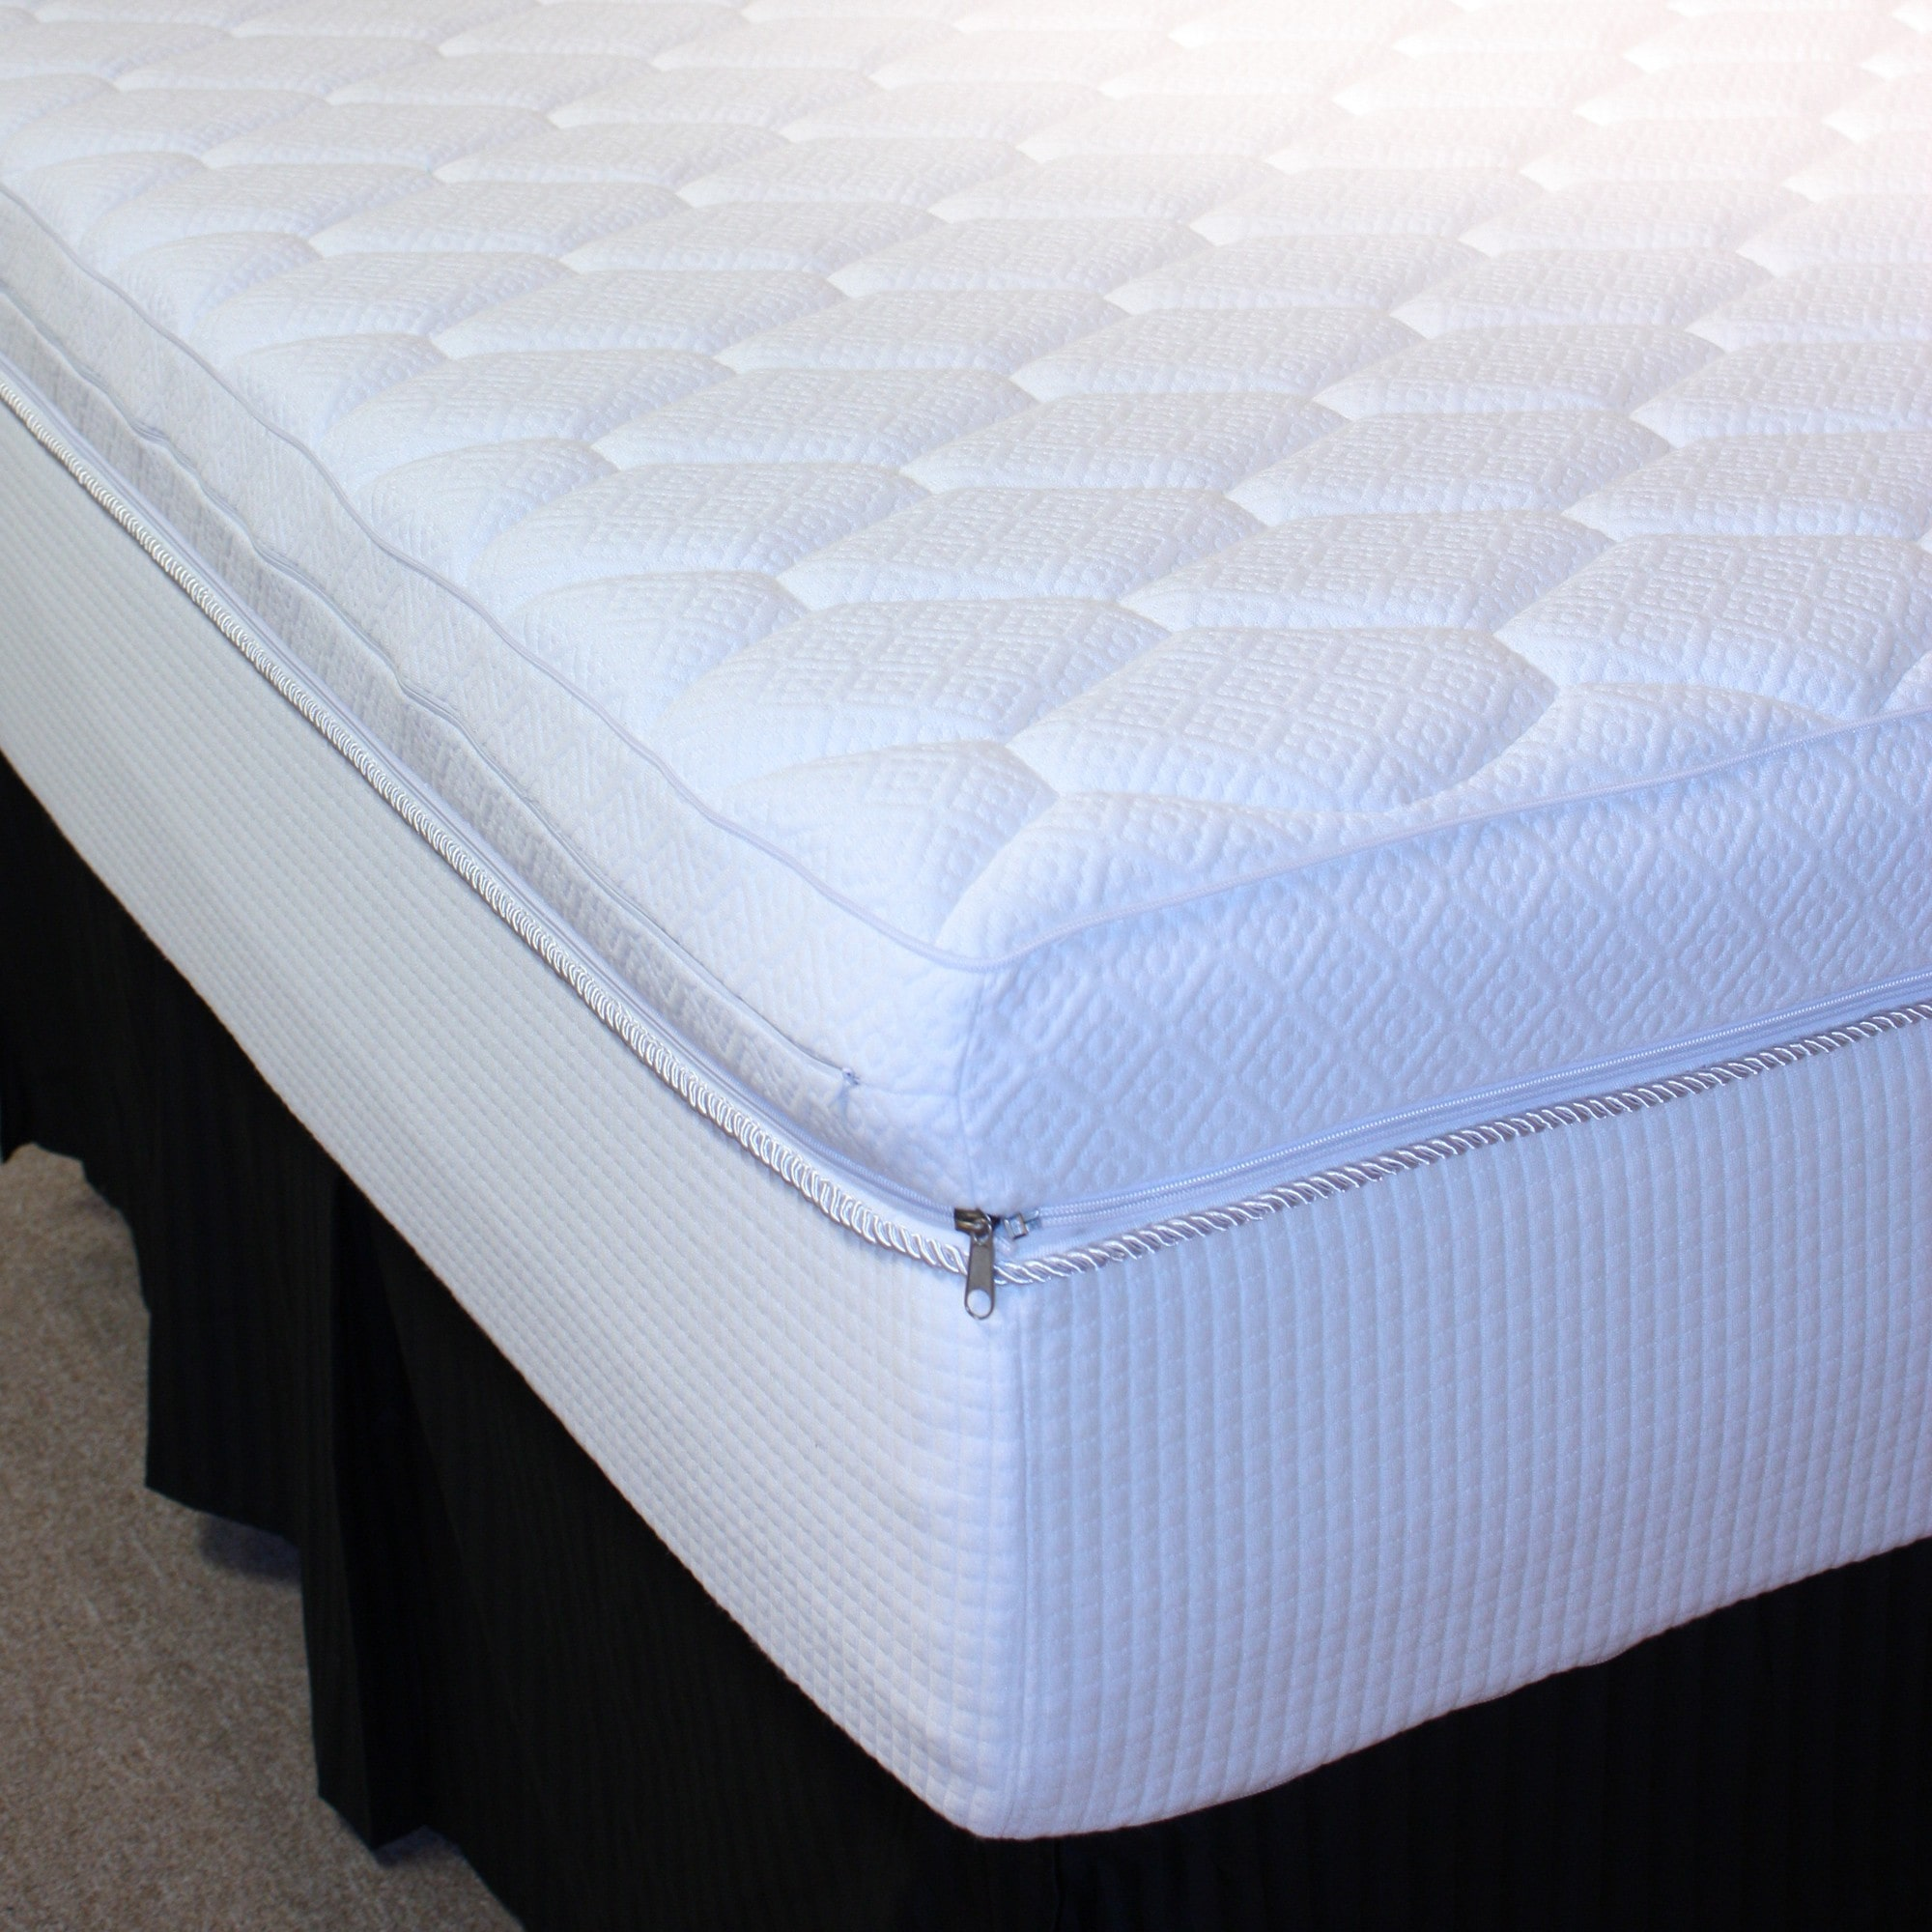 Rio Home Fashions Pure Rest  Reversible Top 12-inch Full-size Memory Foam Mattress